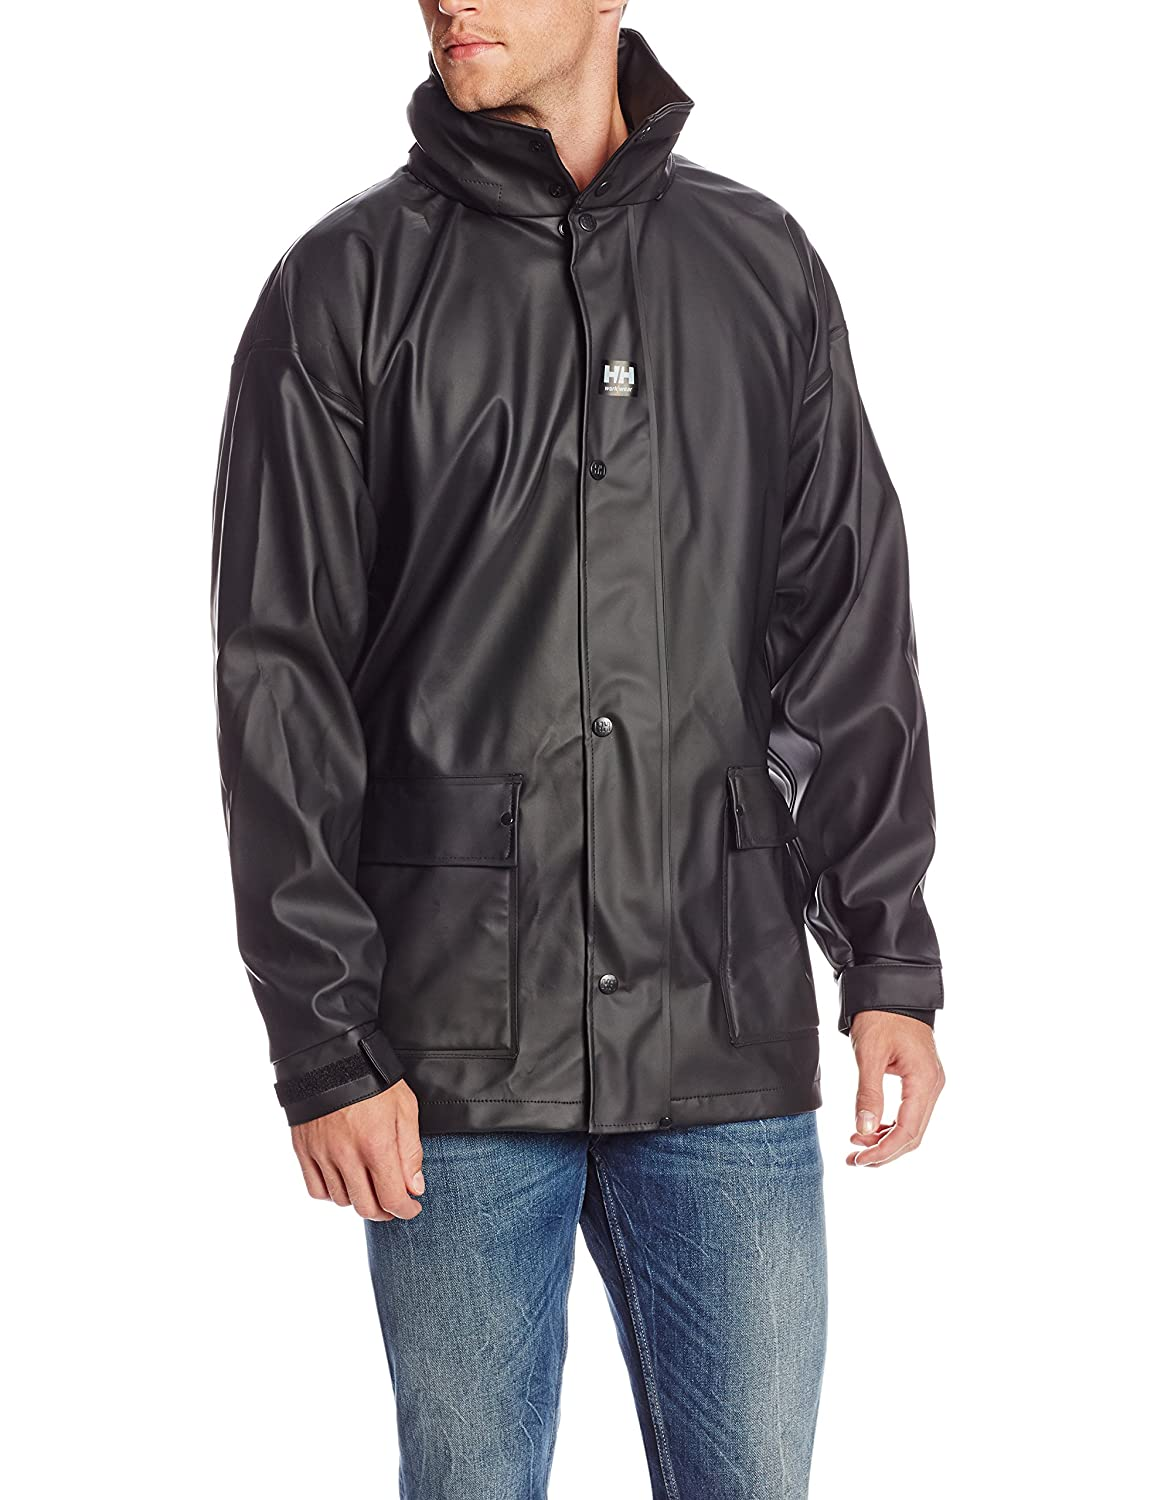 Top Rated Work Jackets for Men $50-$100